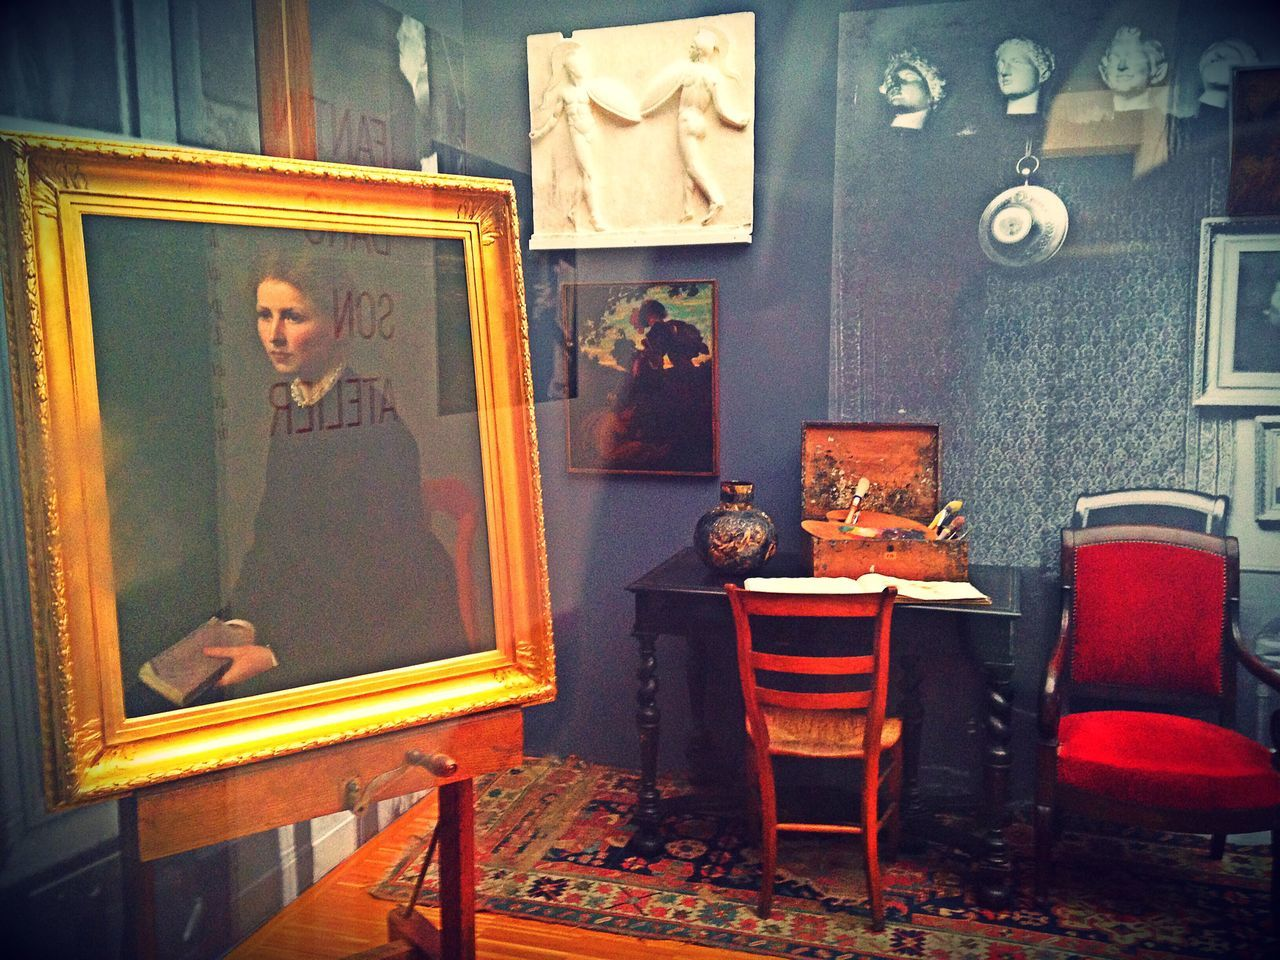 The Photojournalist - 2017 EyeEm Awards ~ L'atelier d'Henri Fantin-Latour France ✨ Museum Gallery Of Art Arts Culture And Entertainment Fine Art Painting Human Representation No People Indoors  Oil Painting Artsy Artistic Standing French Art Gallery Exhibition Painted Image